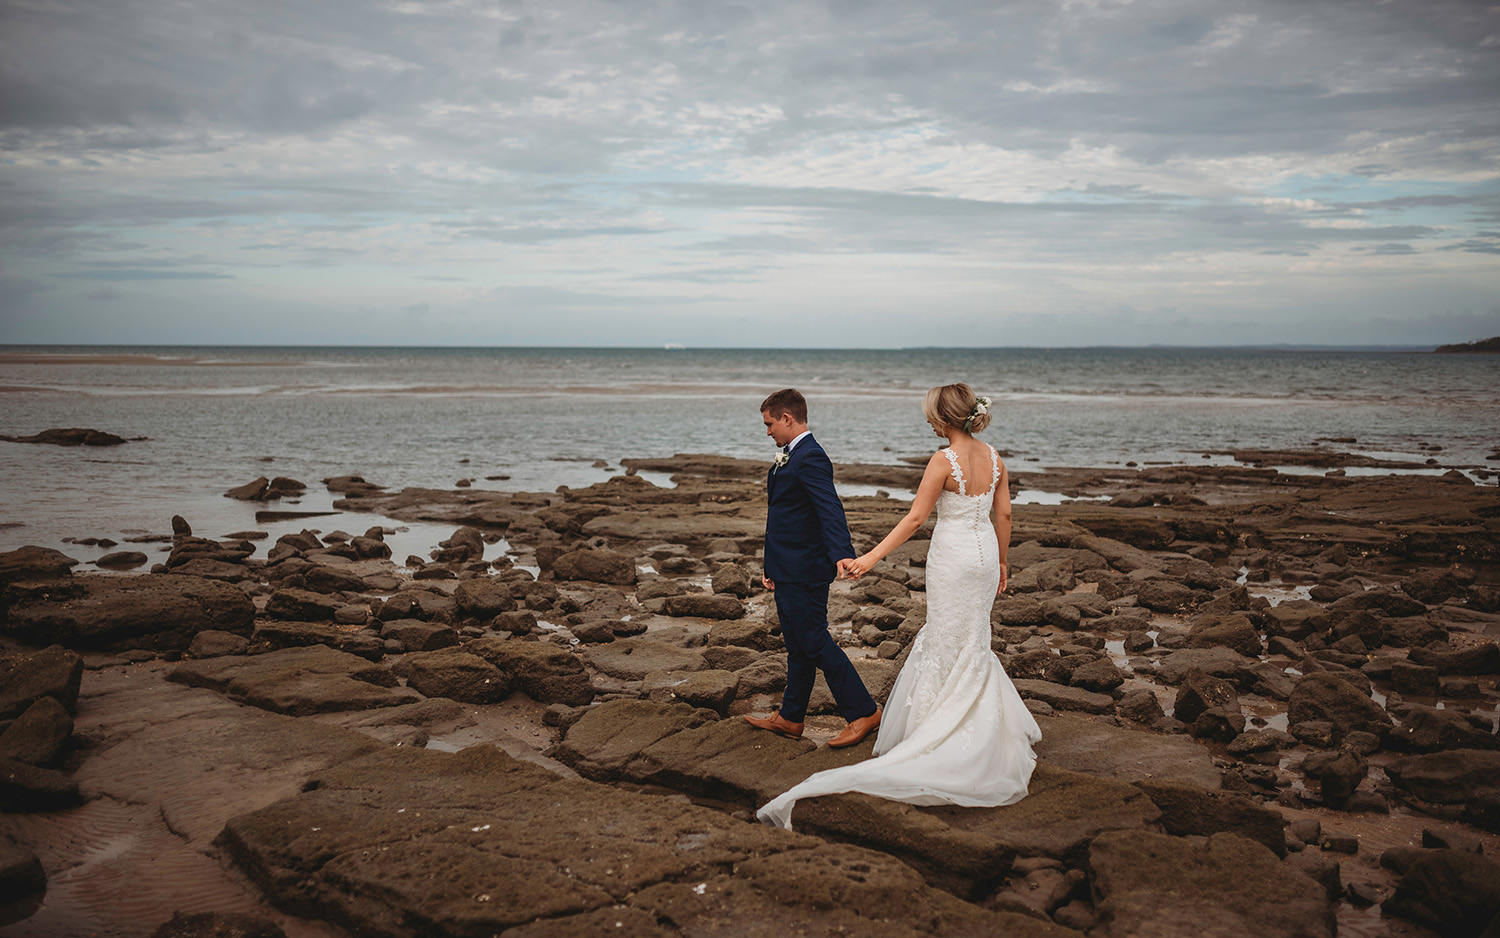 groom and bride walking on the rocks at the beach